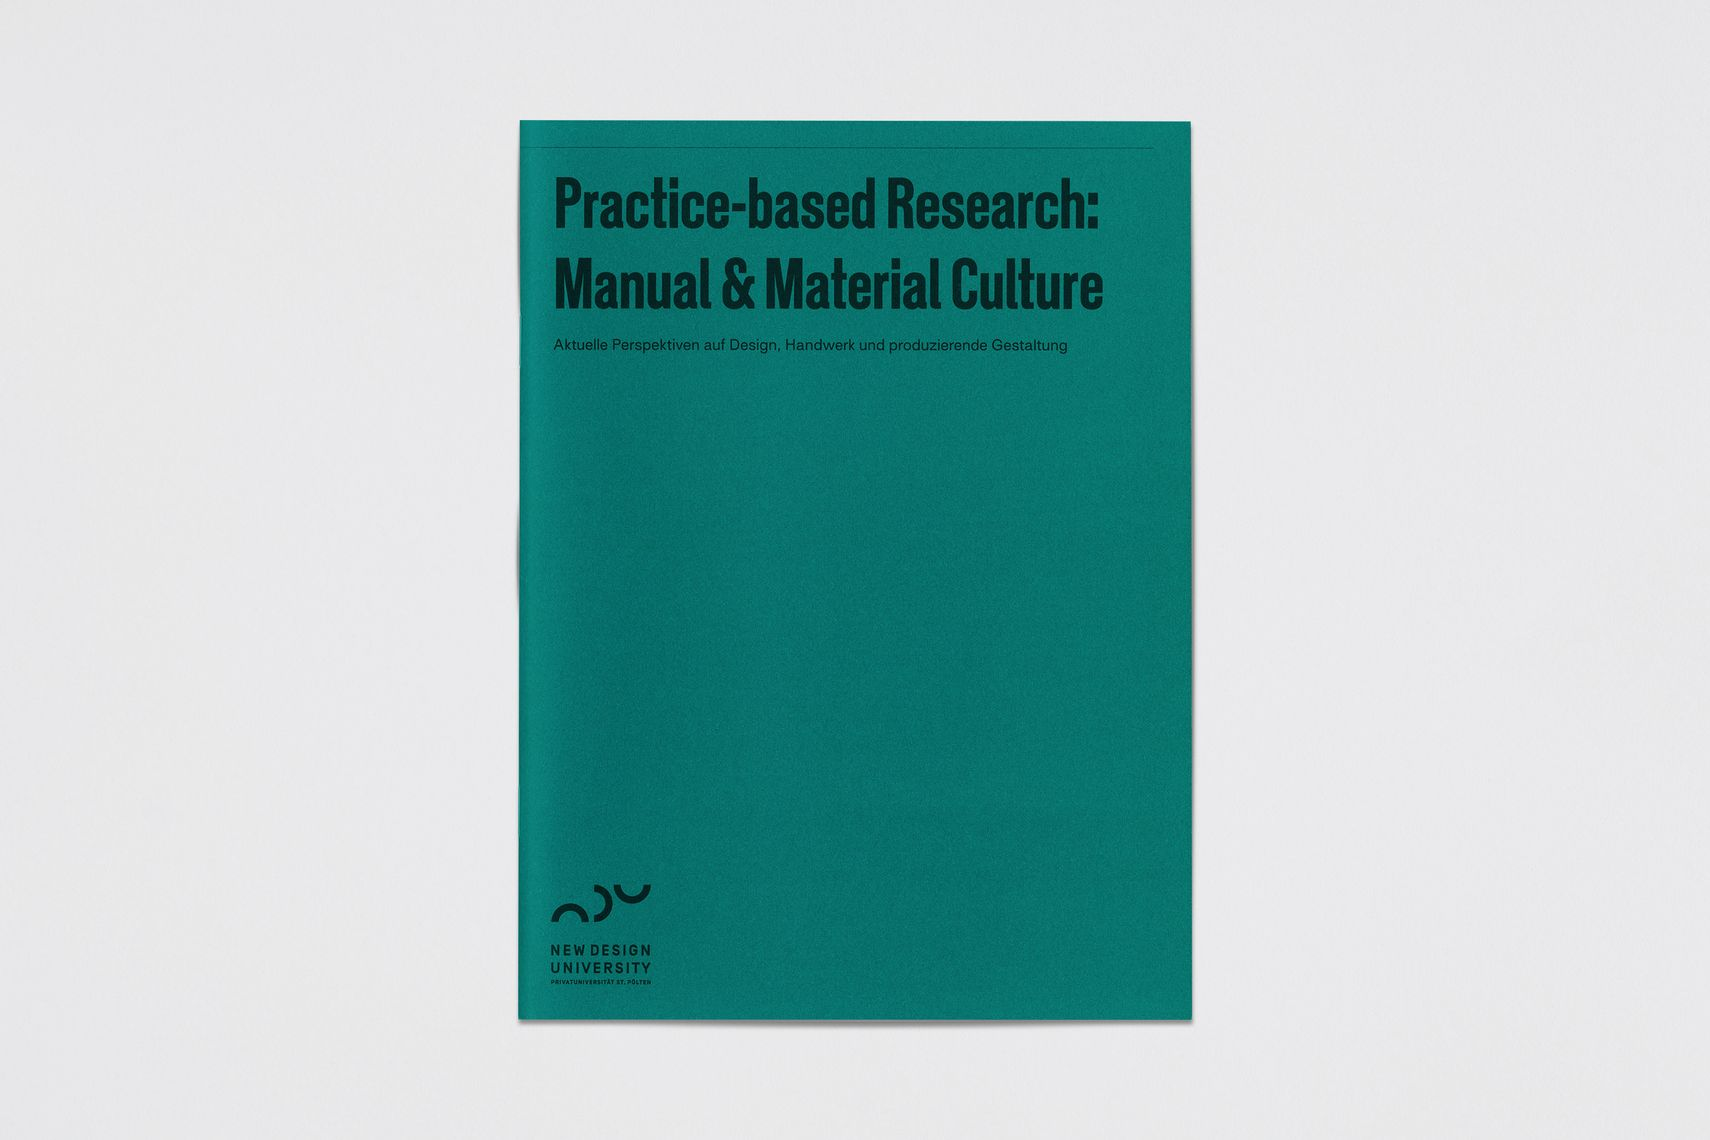 Practice-based Research: Manual & Material Culture